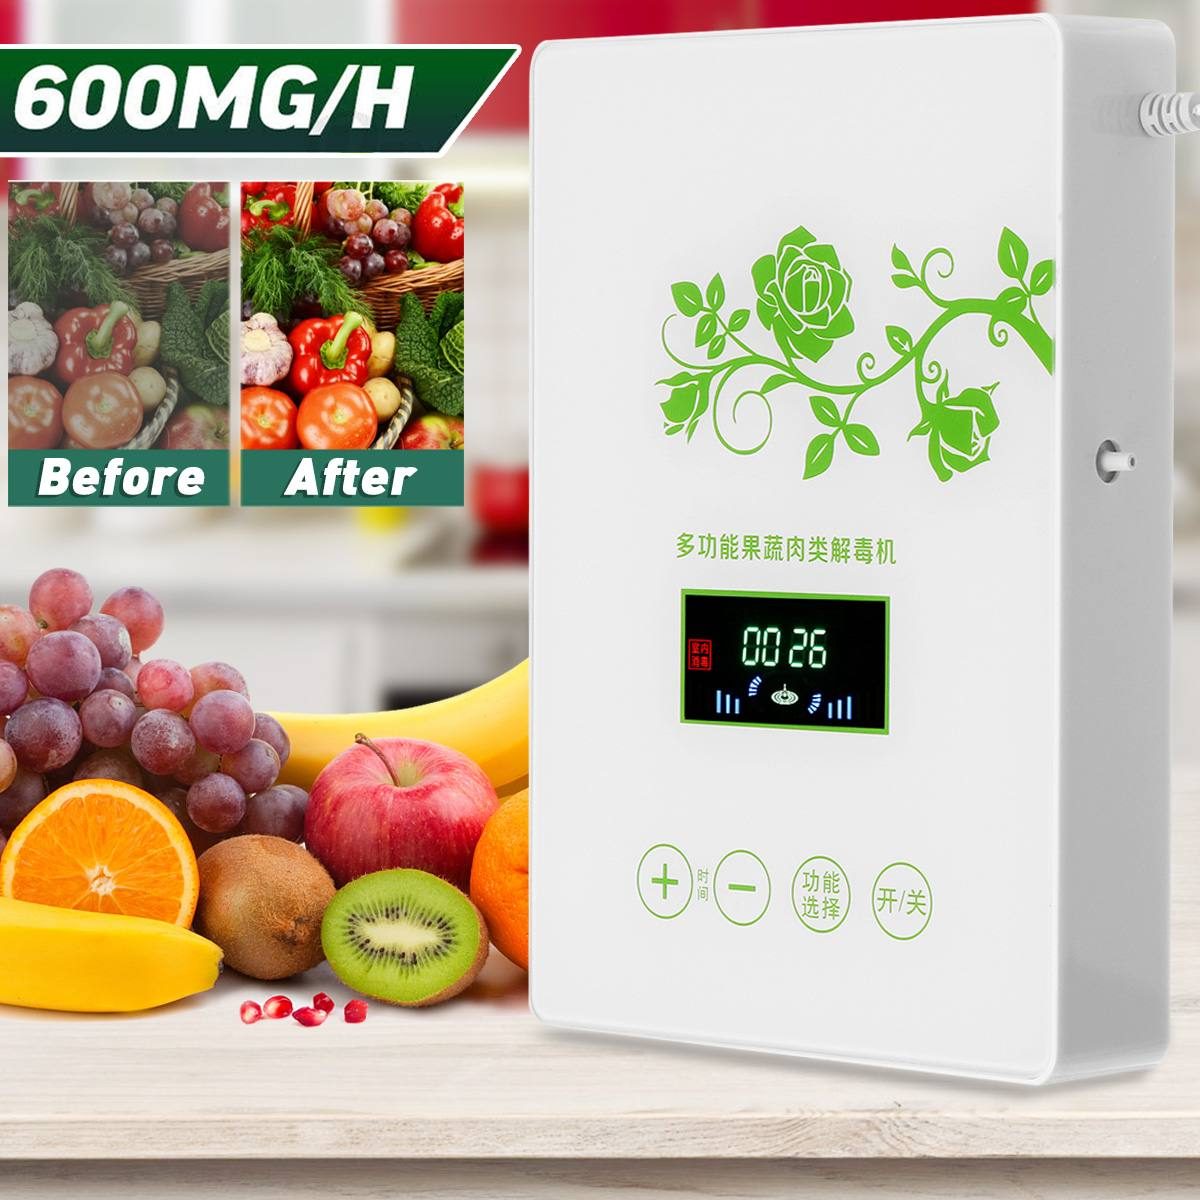 600mg/h Ozone Generator Home Air Purifier Active Oxygen Meat Fruits Vegetables Purification Kitchen